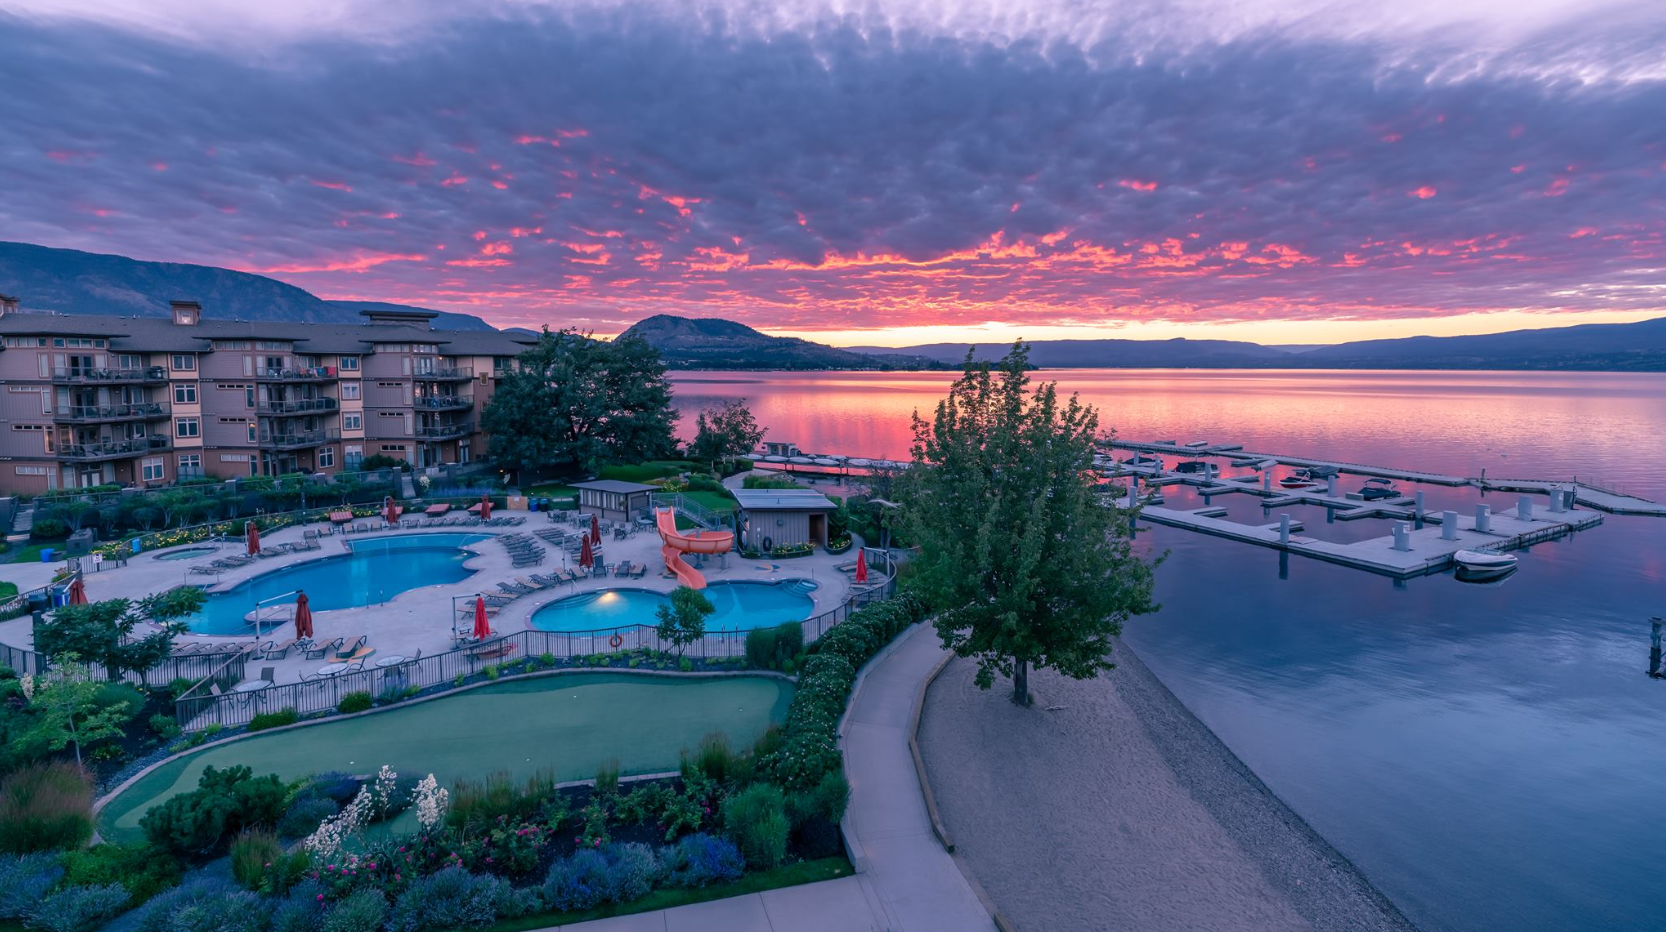 Sunset over the Cove Lakeside Resort